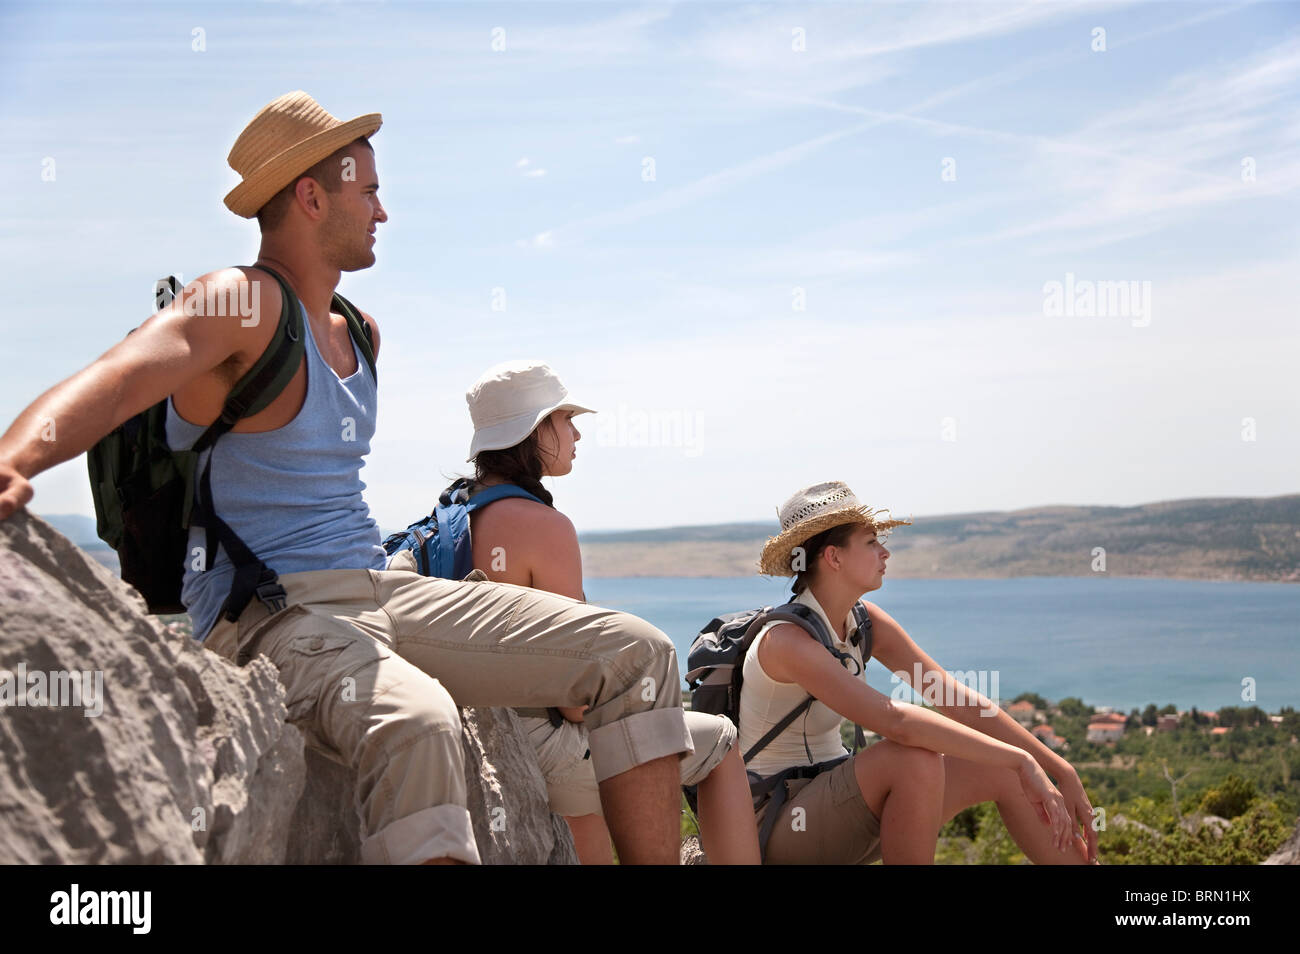 Hikers resting on coastal path - Stock Image